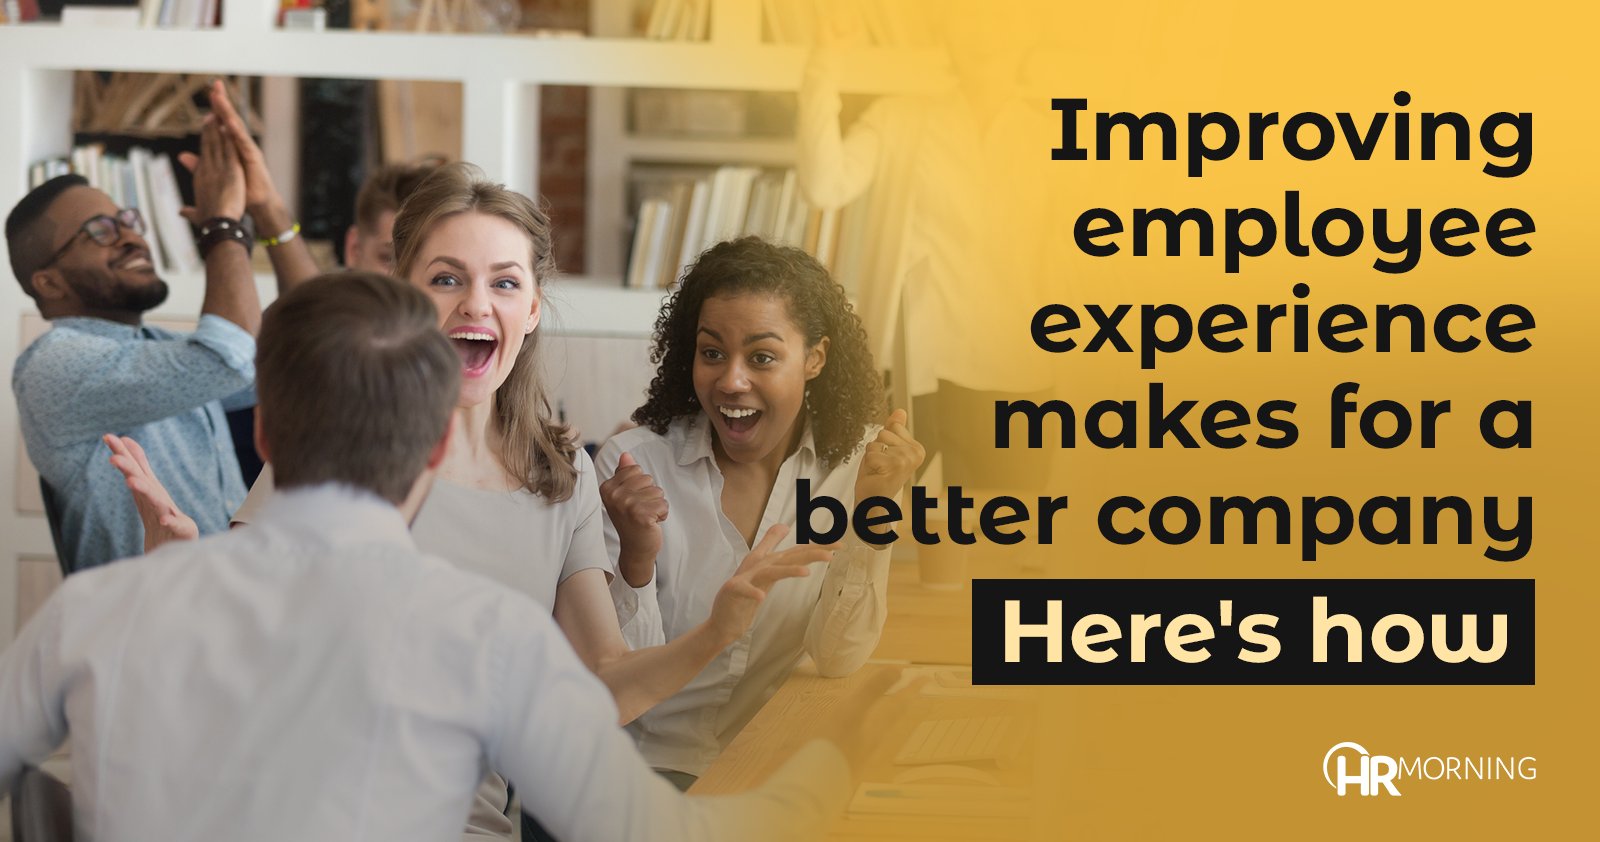 Improving employee experience makes for a better company